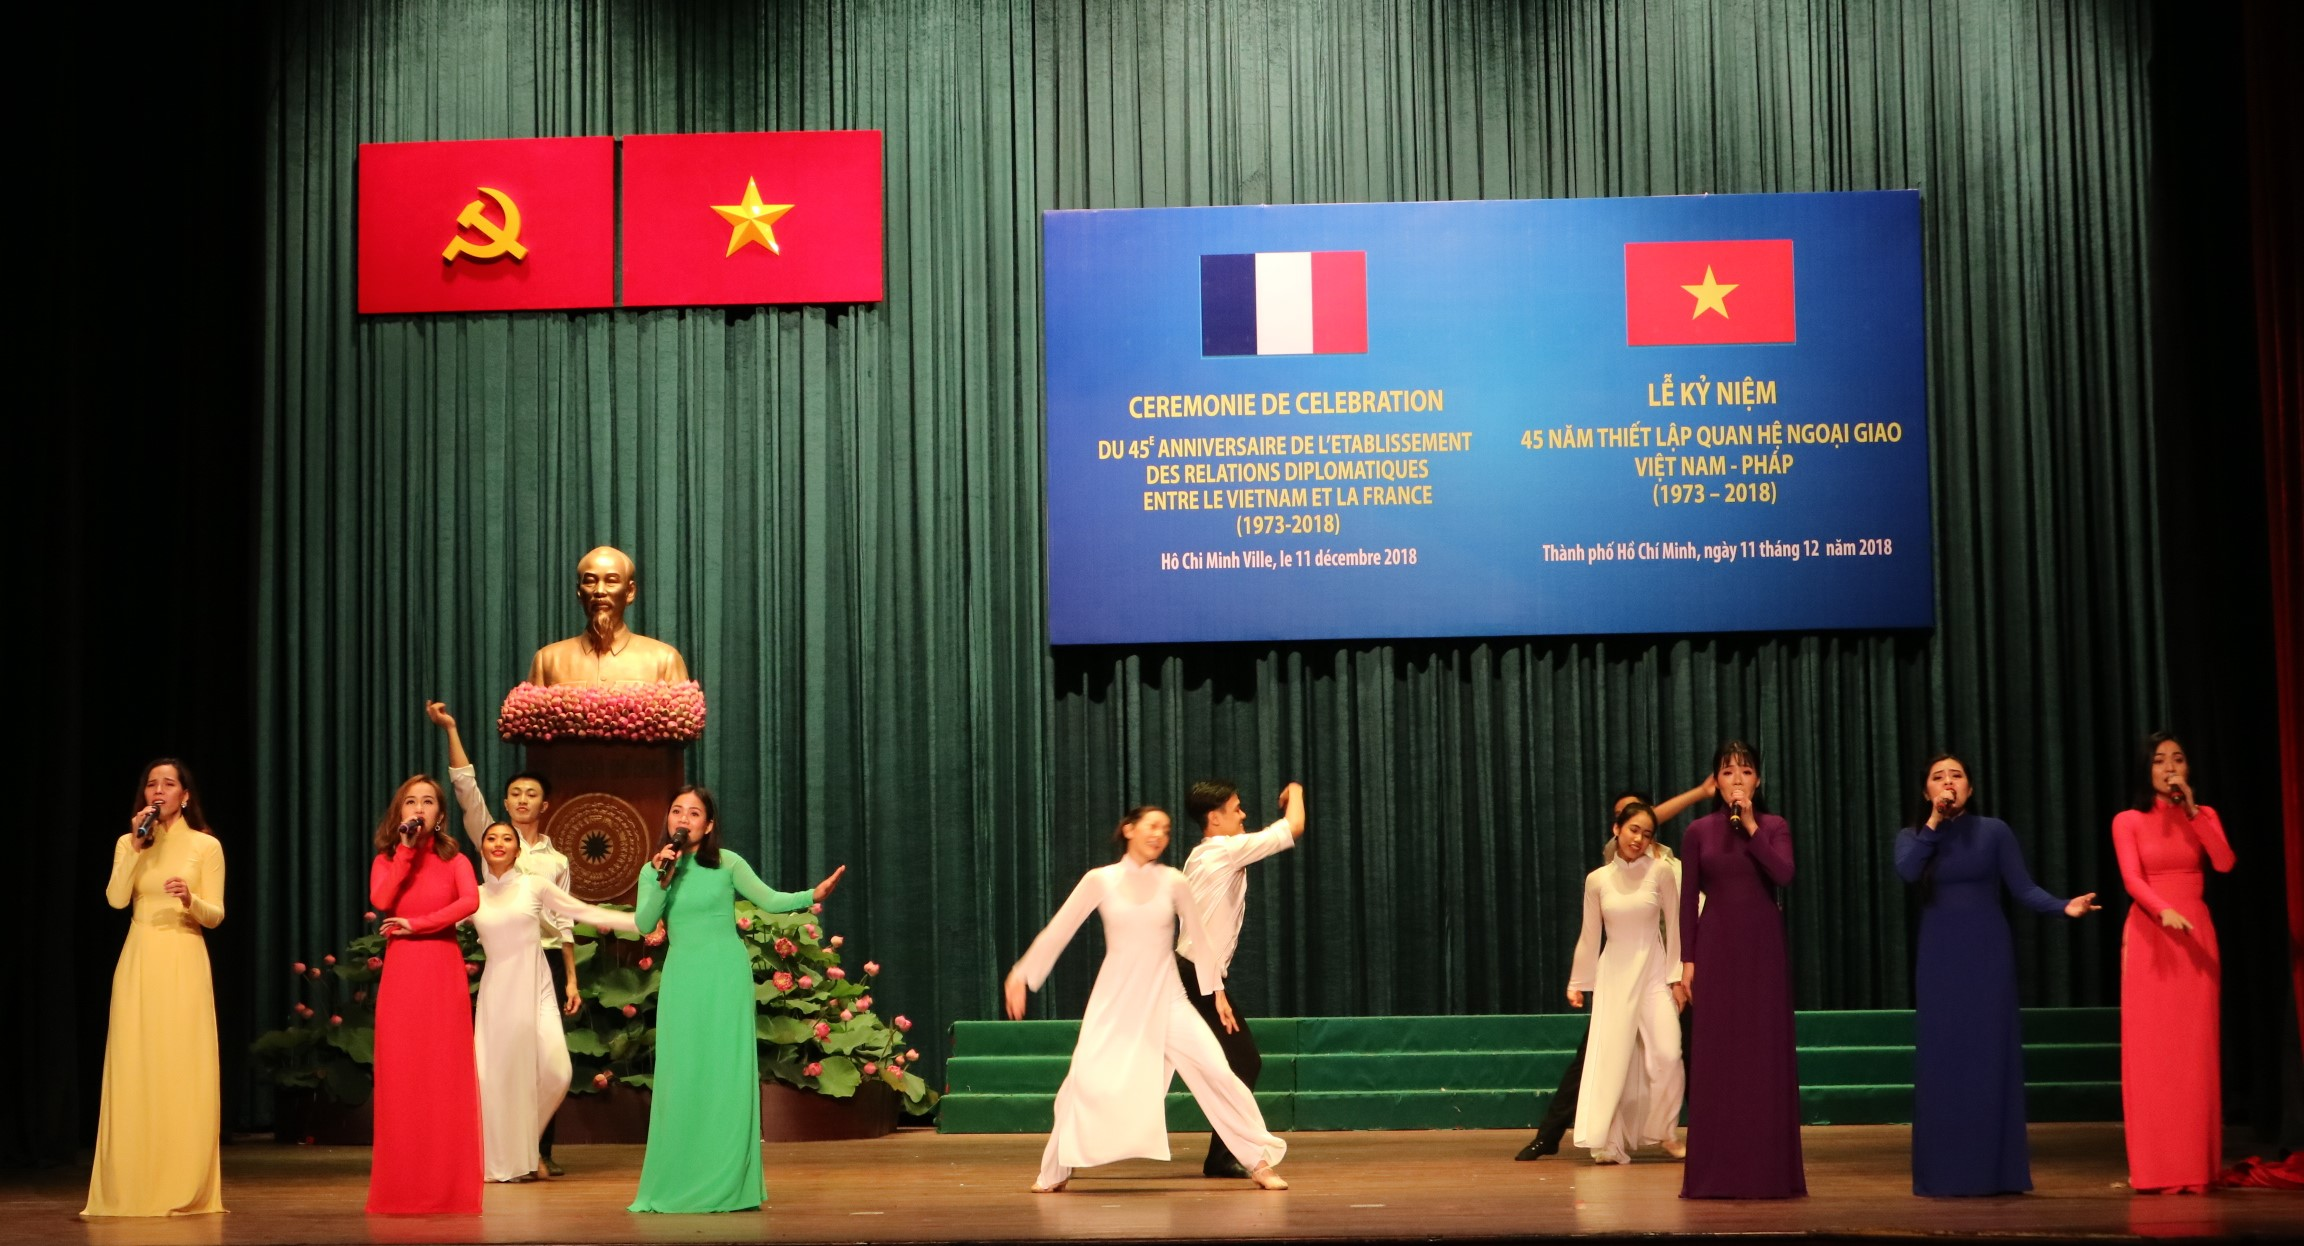 A musical performance at at an event to celebrate 45 years of diplomatic relations between Vietnam and France In Ho Chi Minh City, December 11, 2018. Photo: Viet Toan / Tuoi Tre News